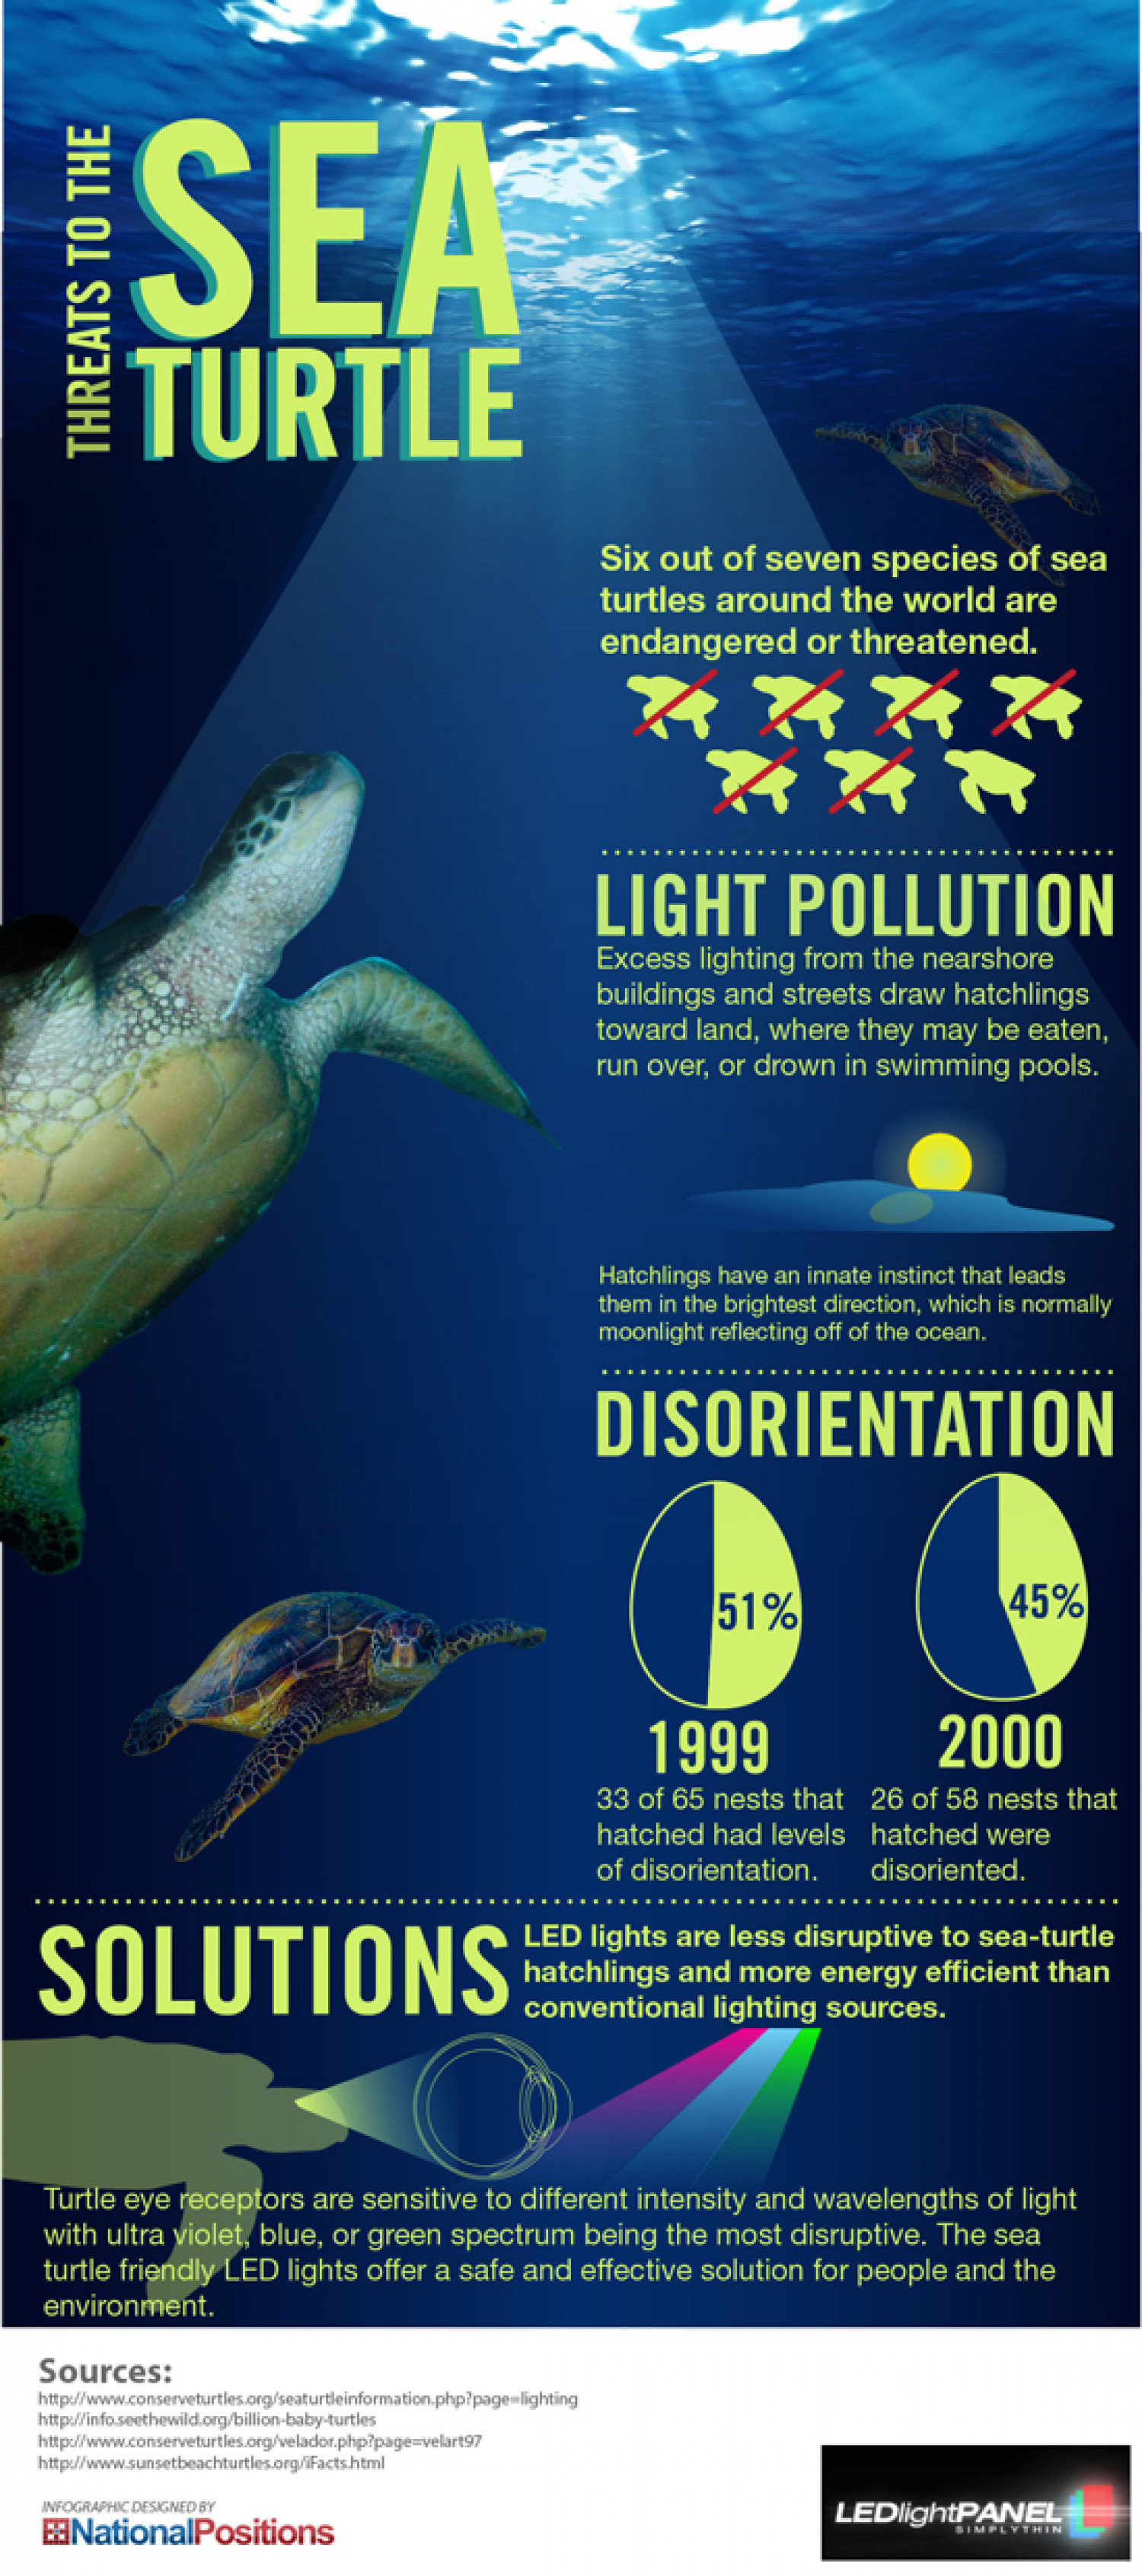 Threats To The Sea Turtles Infographic